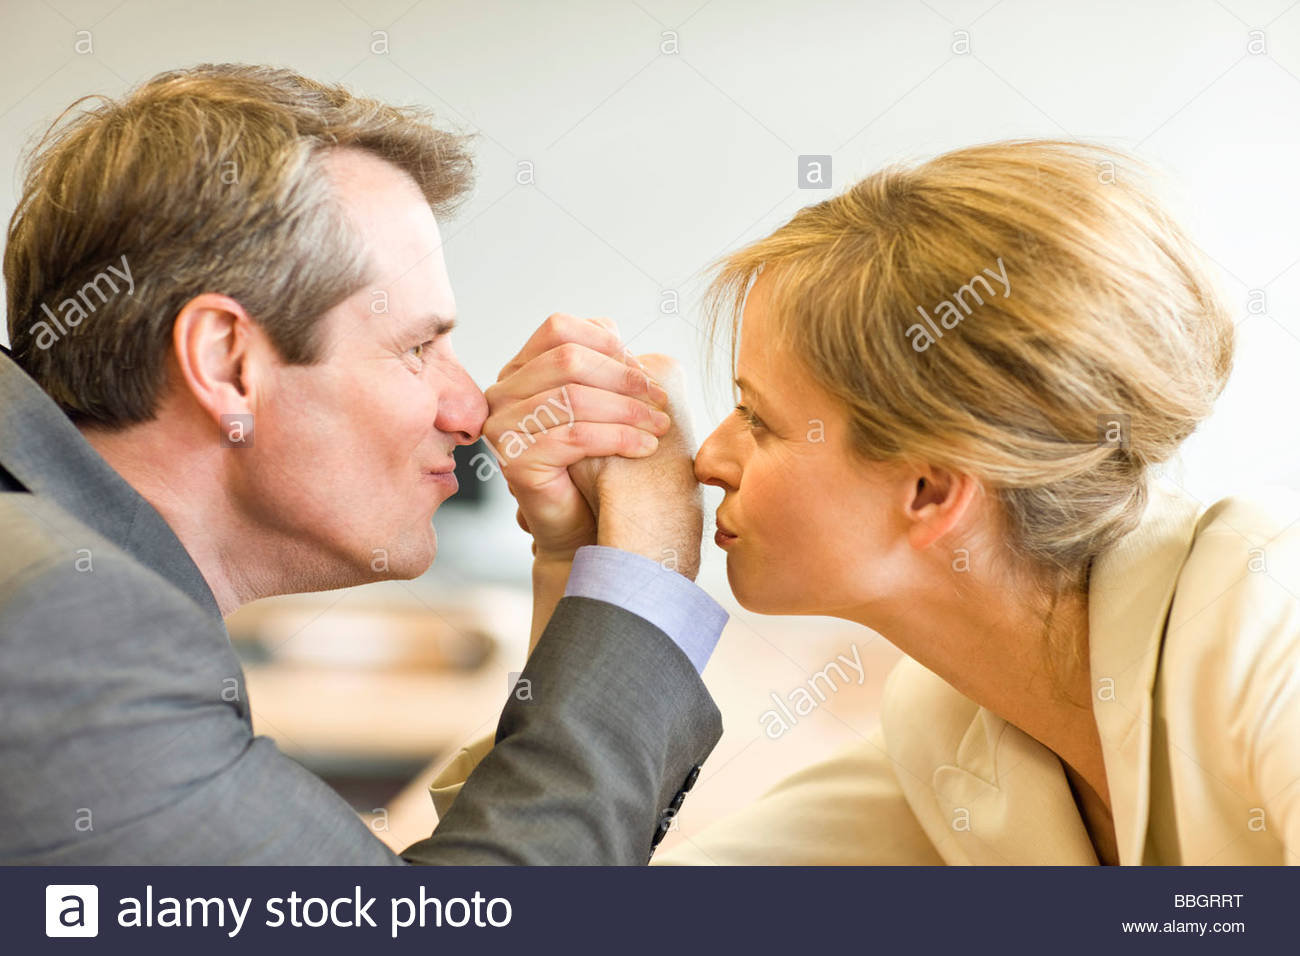 Mature man and woman enjoying a friendly bout arm wrestling - Stock Image